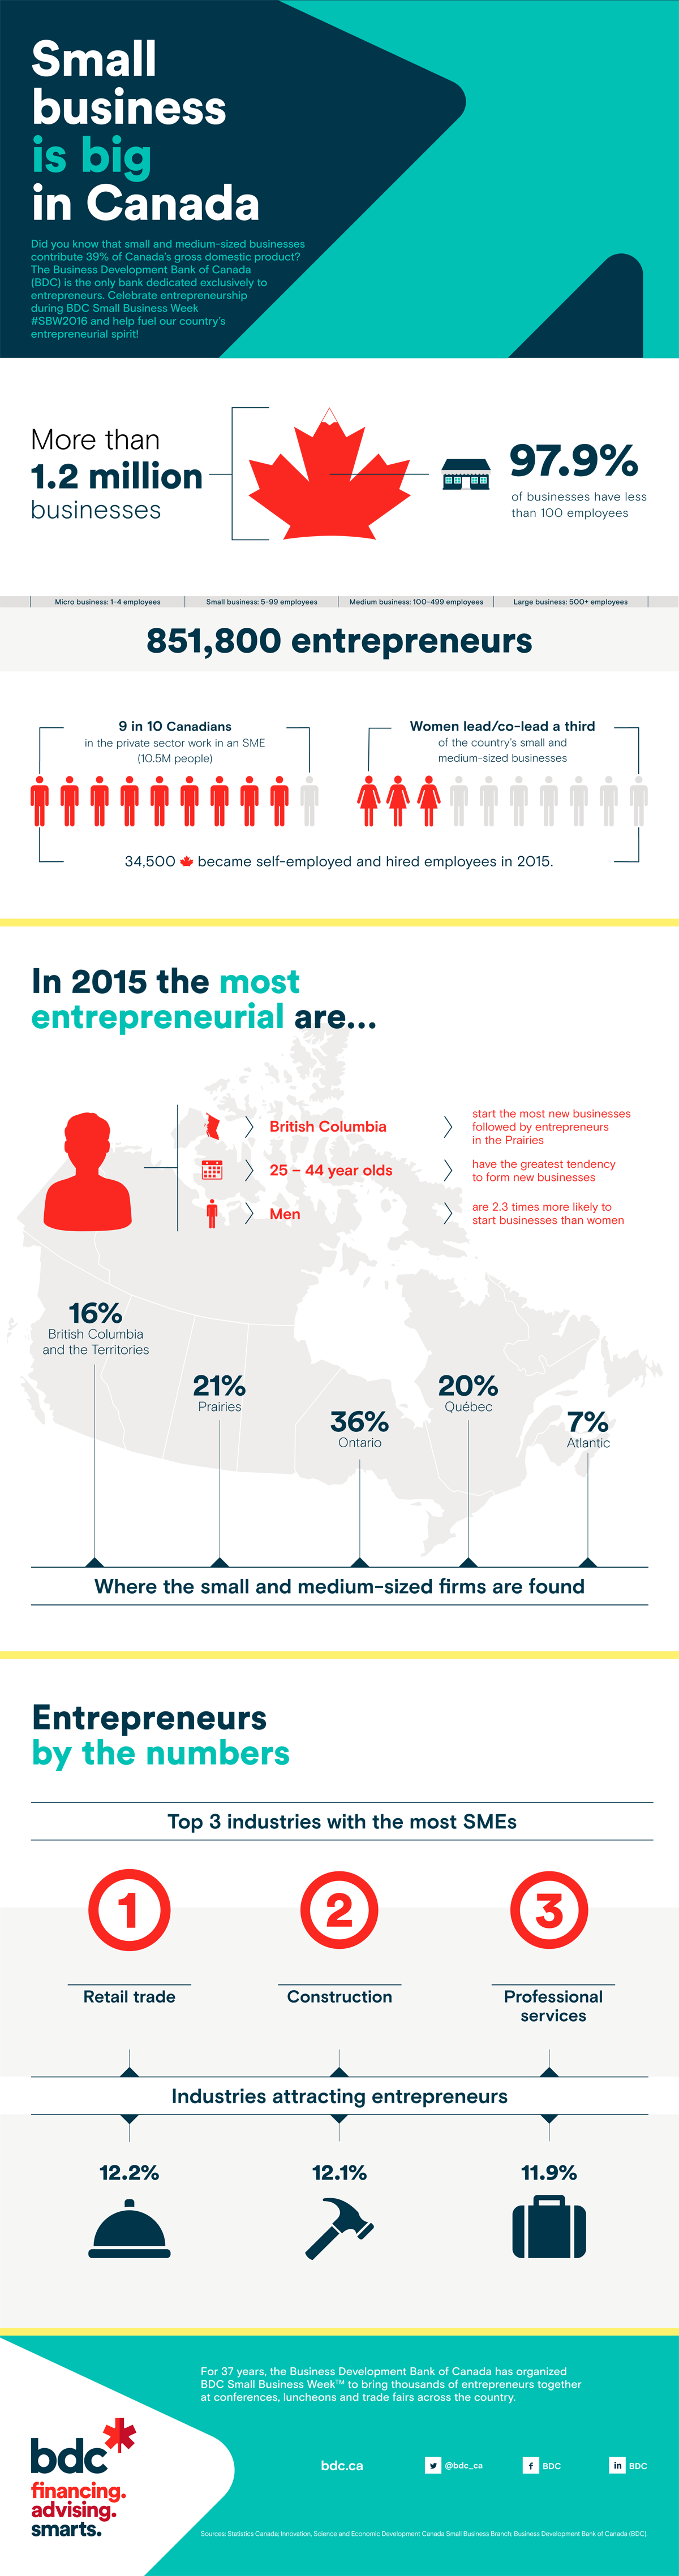 SMEs in numbers - BDC Small Business Week 2016